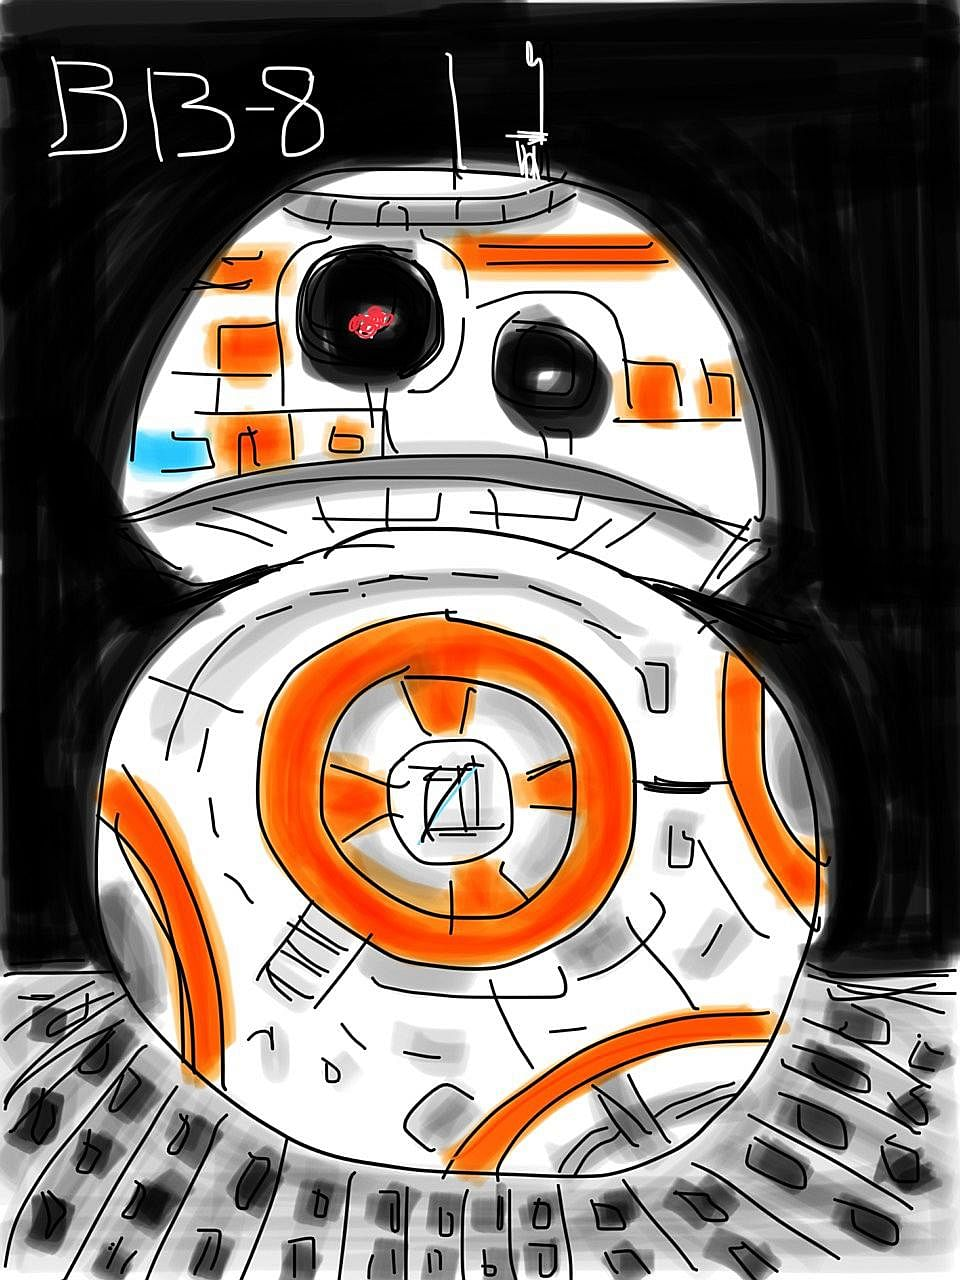 The drawings, which started as a way to encourage the grandson's interest in letters and words, have evolved from stick figures to more complex subjects such as Mack the truck from the film Cars, and BB-8 (above), the droid from Star Wars.